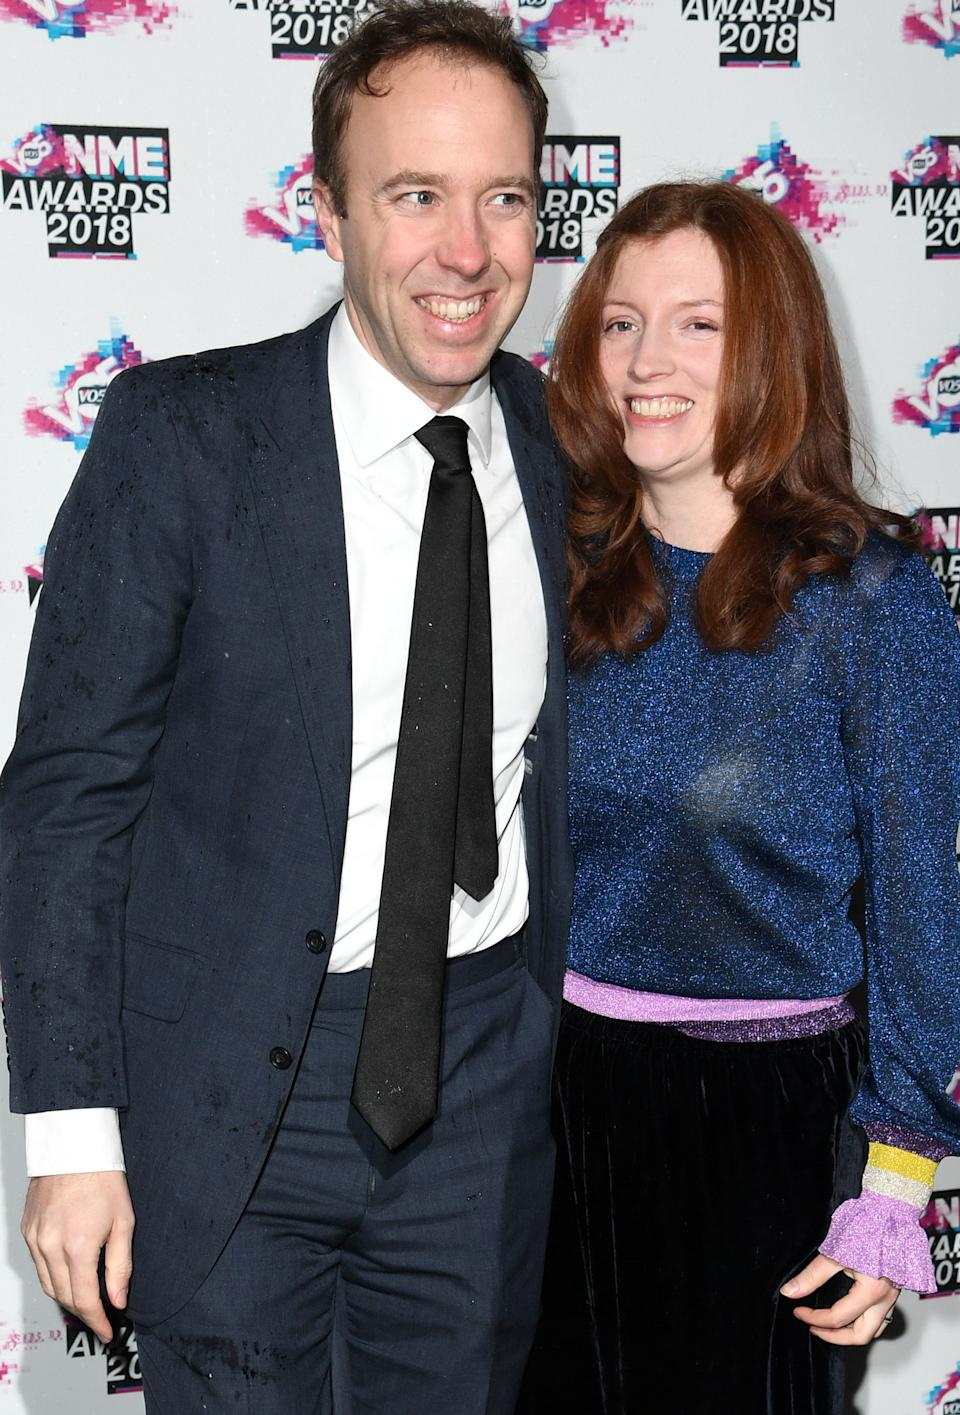 Secretary of State for Digital, Culture, Media and Sport Matt Hancock and his wife Martha attending the VO5 NME Awards 2018 held at the O2 Brixton Academy, London